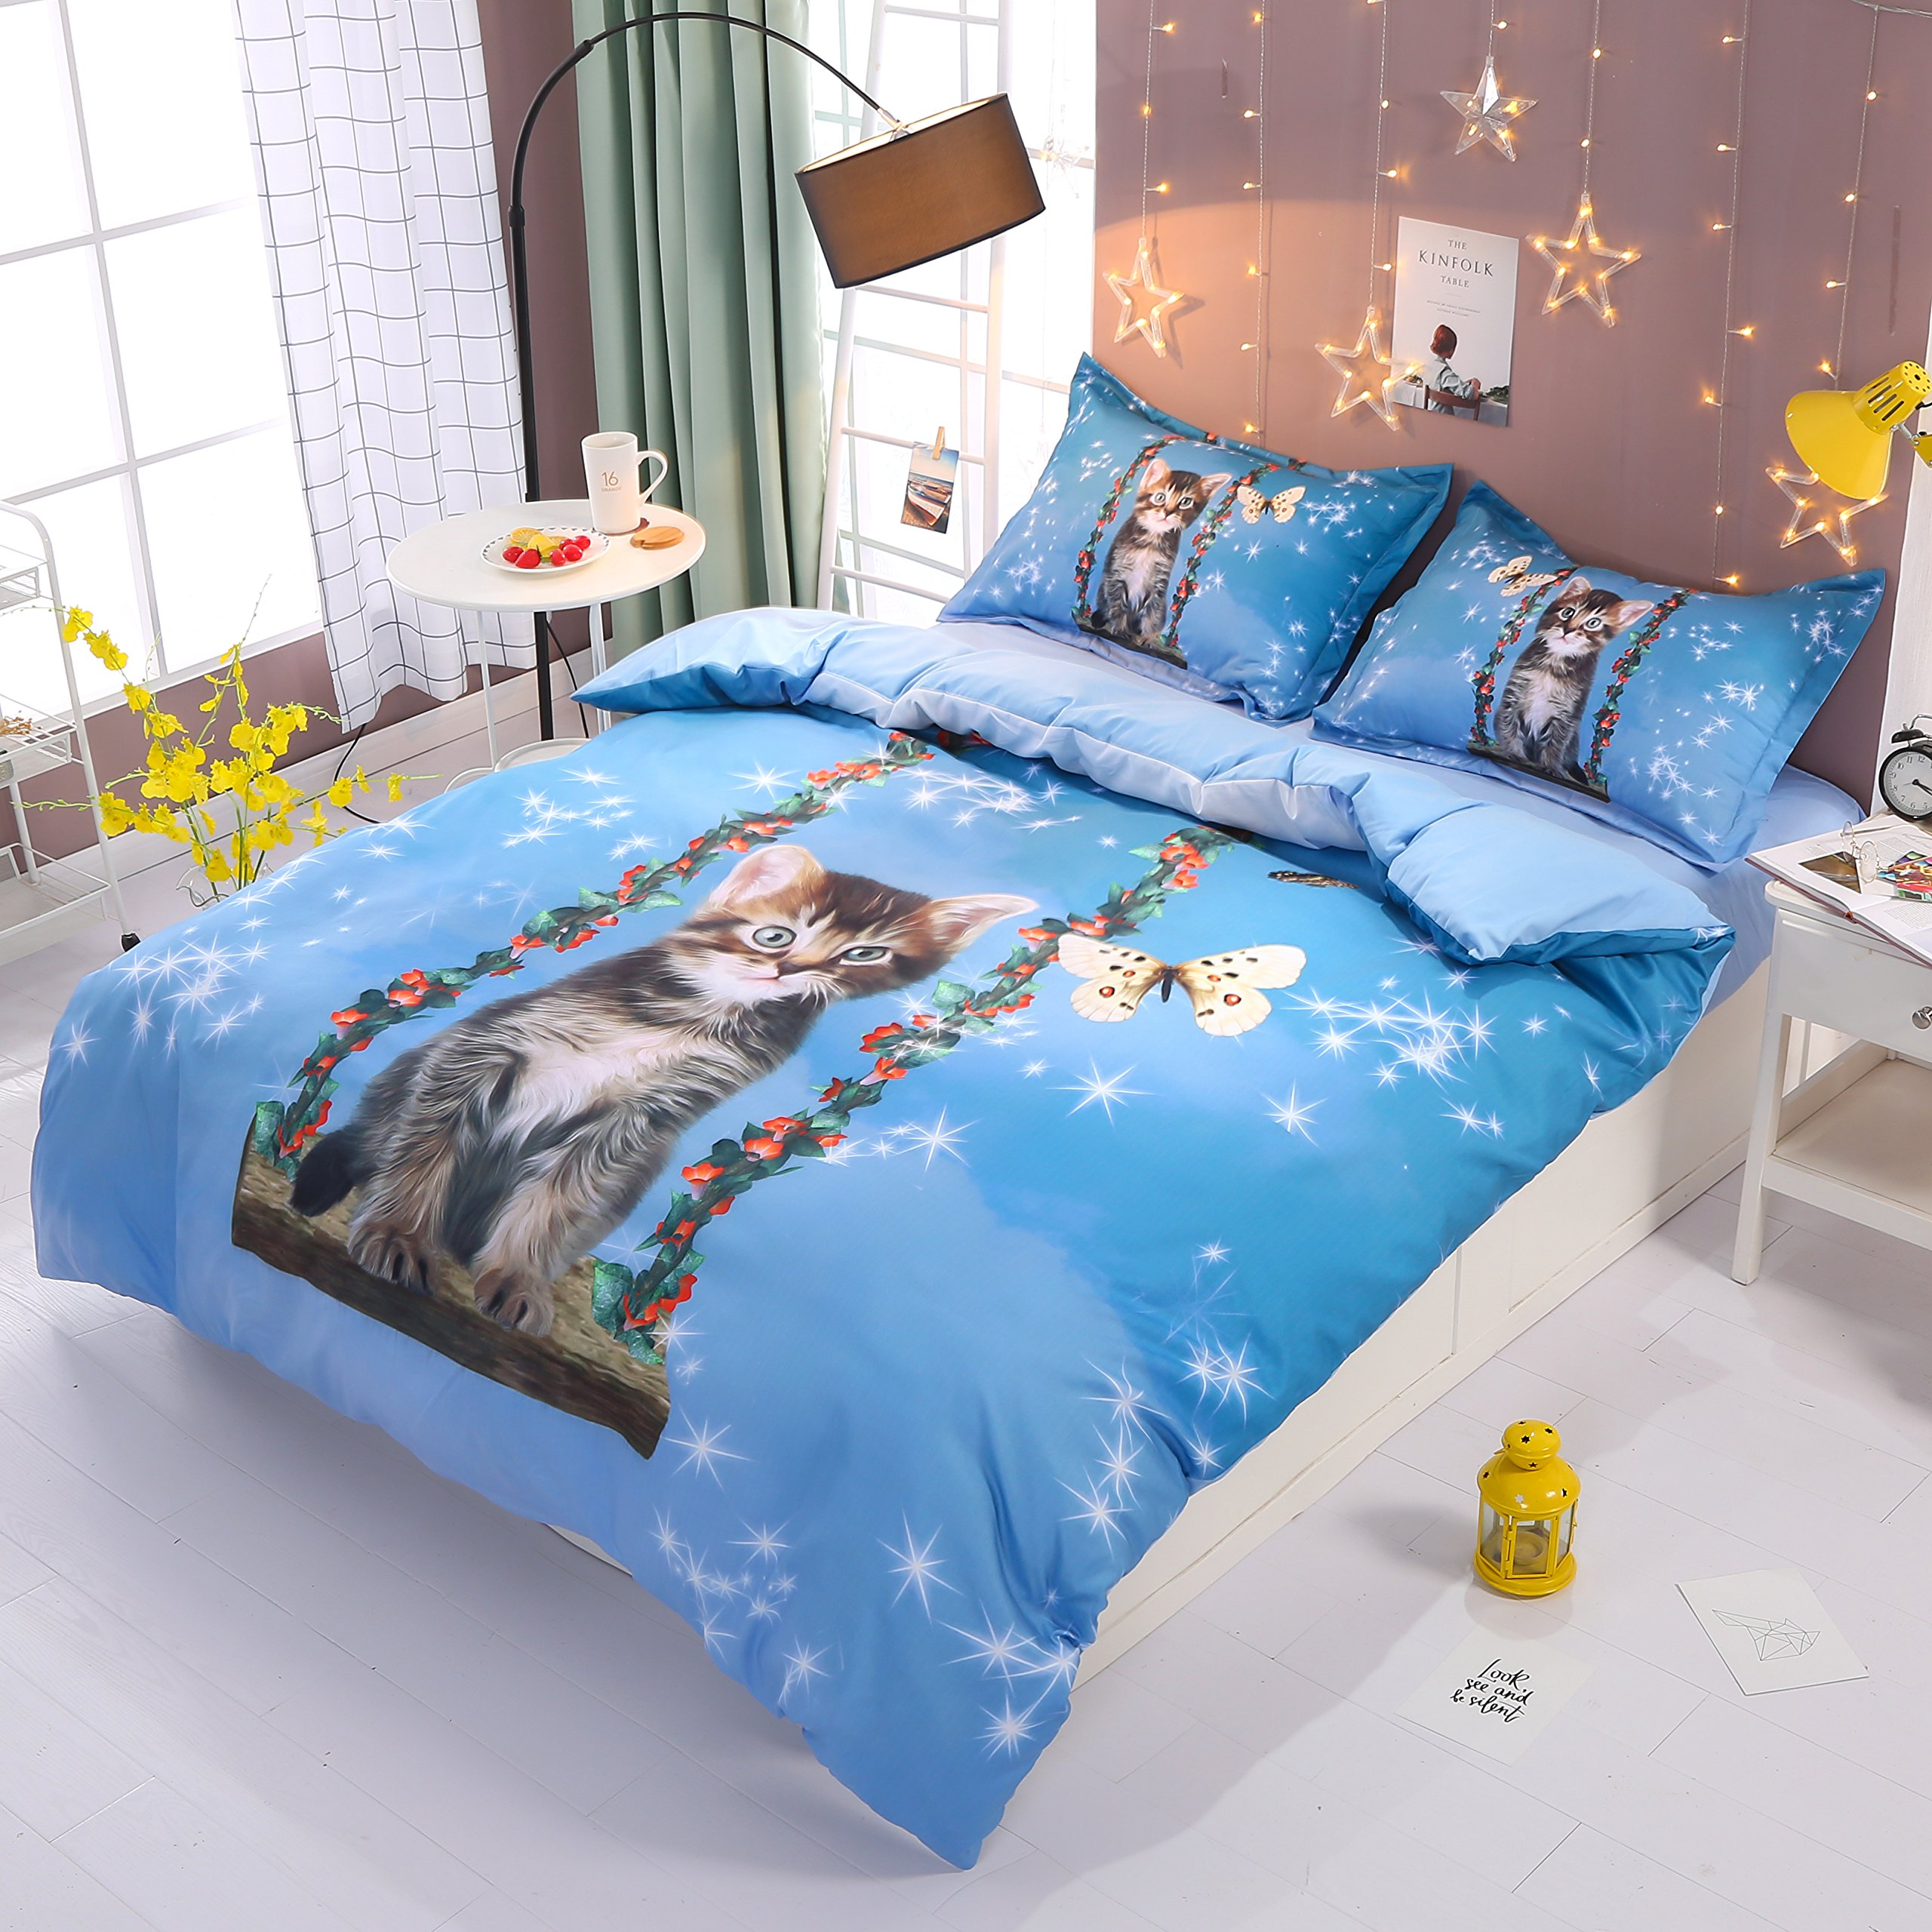 Beddinginn Cute Cat Swing Bedding Set Girls Loves 3d Duvet Cover Set Butterfly Print Girls Bed Set King Size by Beddinginn (Image #1)